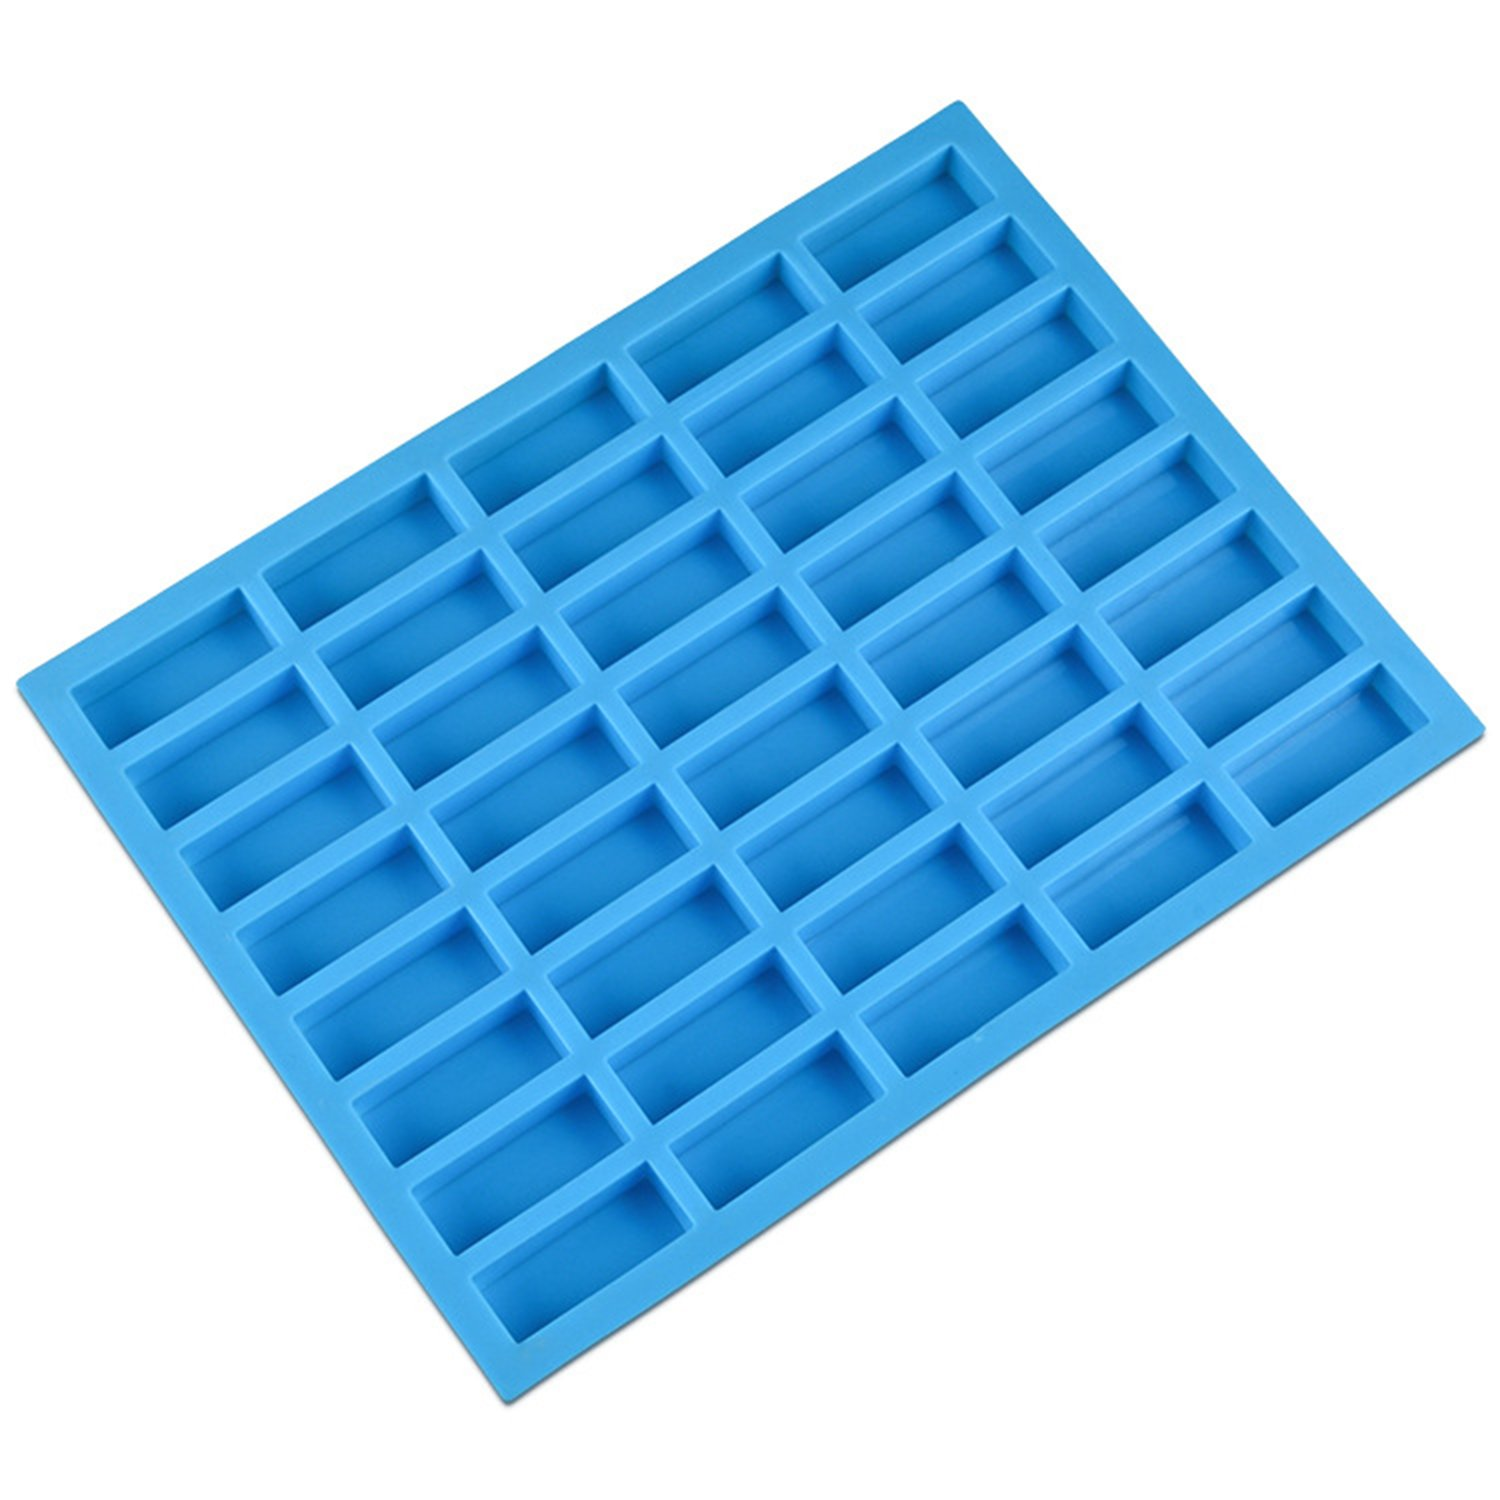 V-fox 80 Cavities Square and Heart Shaped Hard Candy Silicone Molds for Chocolate, Jelly, Candy and Ice Cube Tray, Purple 4336902770